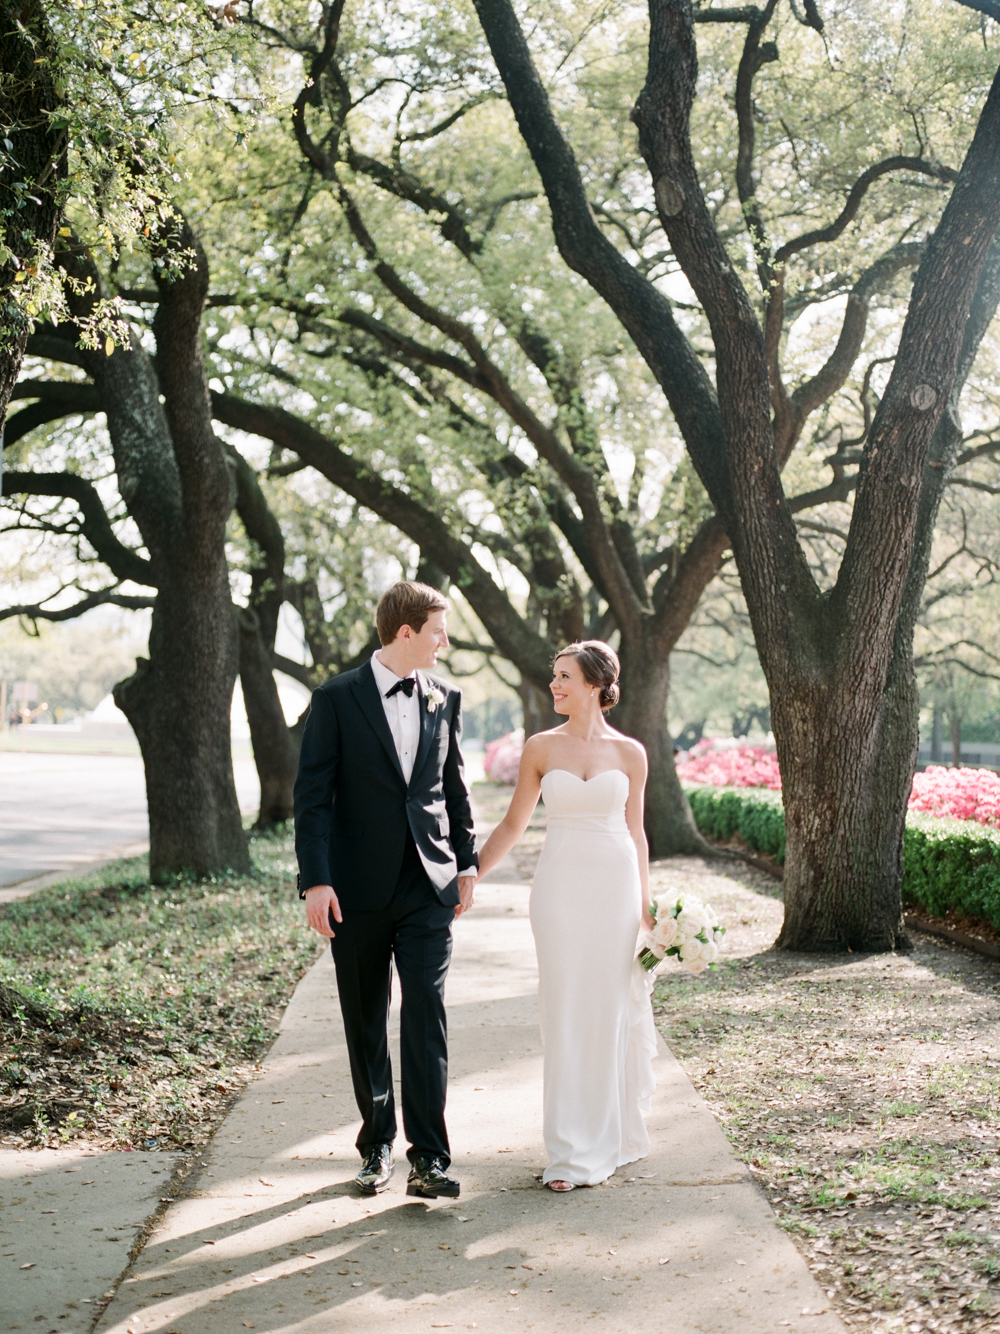 Christine Gosch - destination film photographer - houston wedding photographer - fine art film photographer - elopement photographer - destination wedding - understated wedding - simple beautiful wedding photography-71.jpg